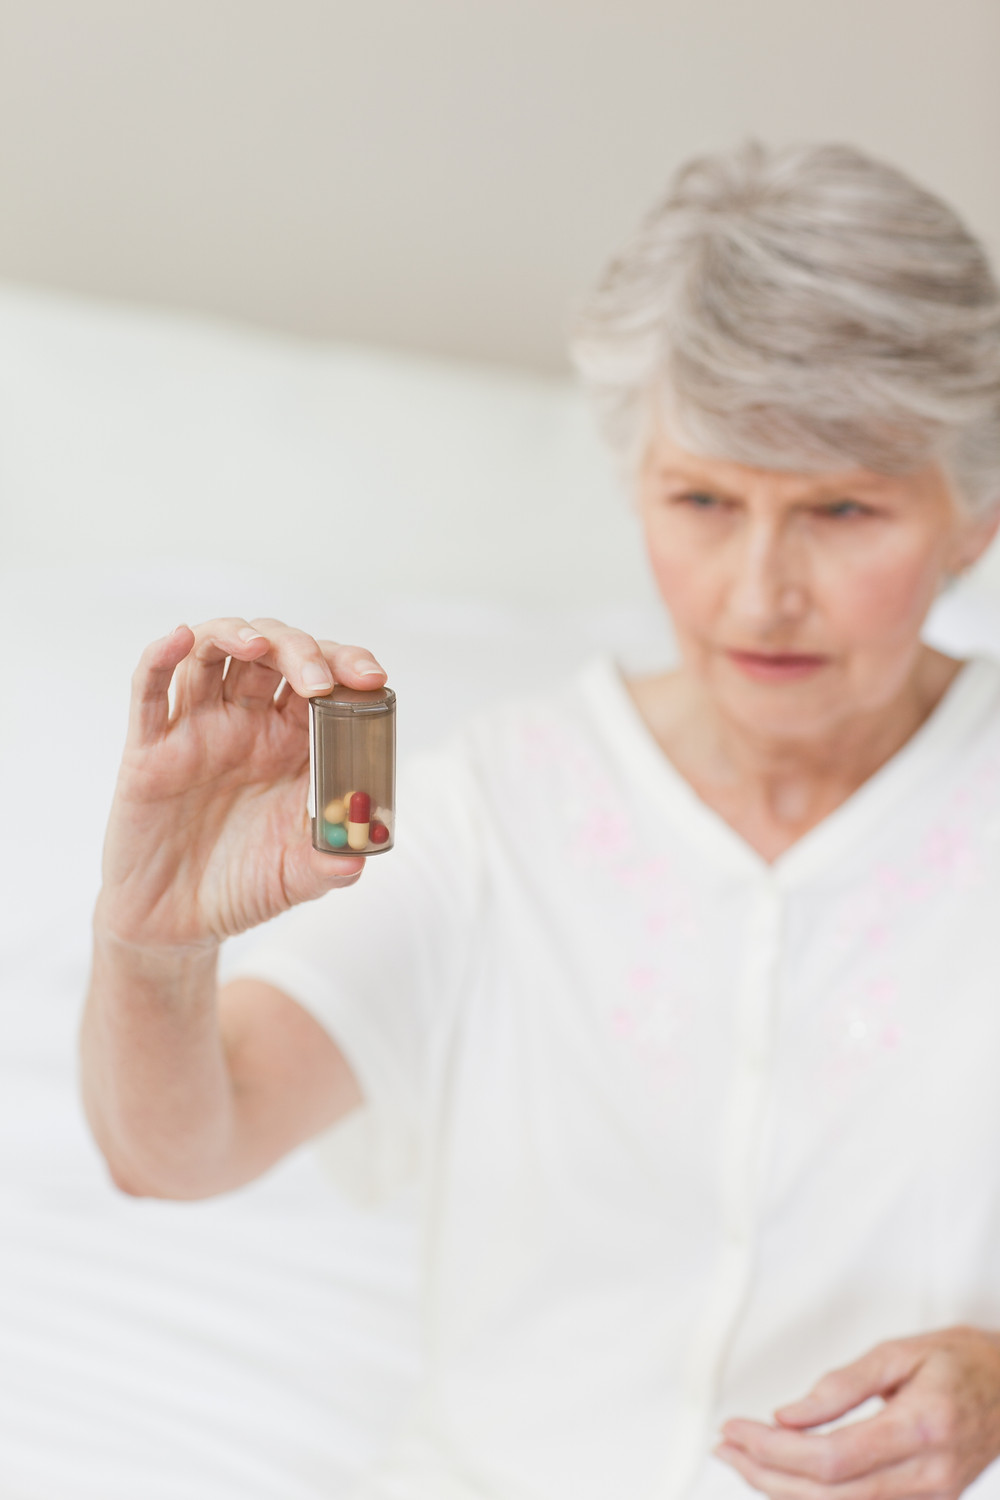 Taking the Correct Medication at the Correct Time by Vivian Green Korner, Certified Dementia Practitioner, Ridgewood Moms